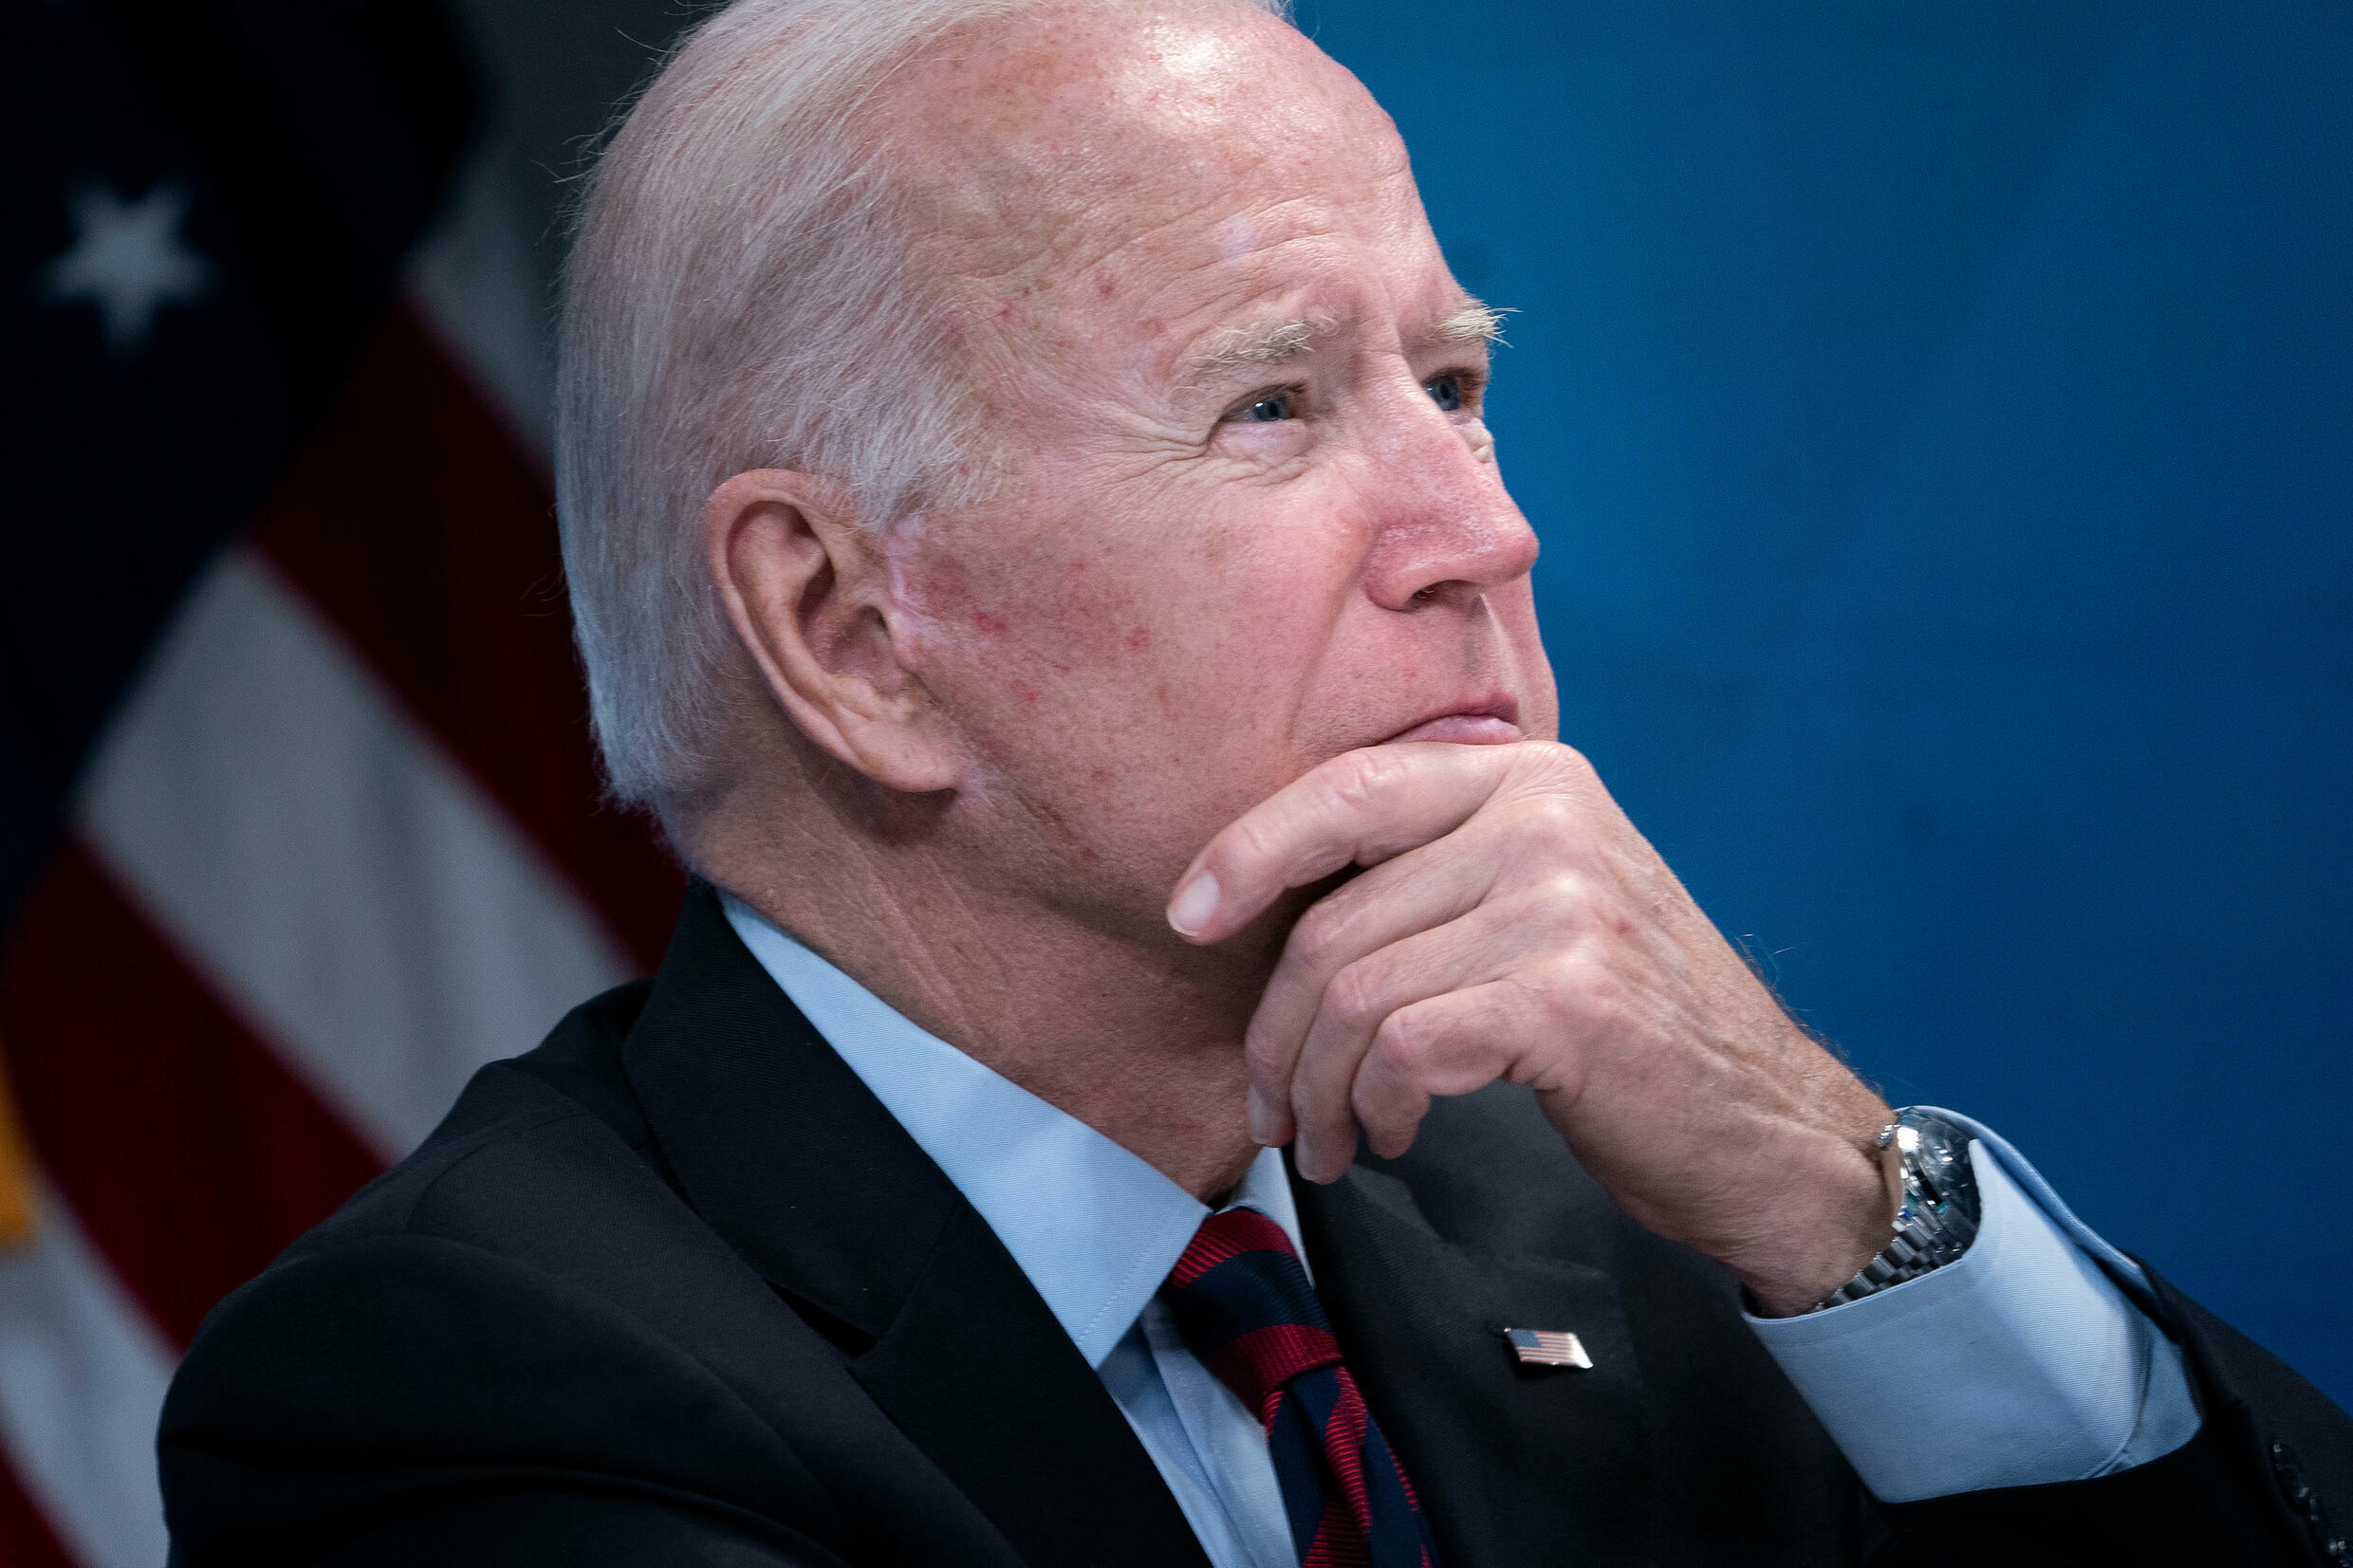 US President Joe Biden, pictured August 30, 2021, has unsuccessfully pressed to wind down the Afghanistan war while serving as vice president under Barack Obama